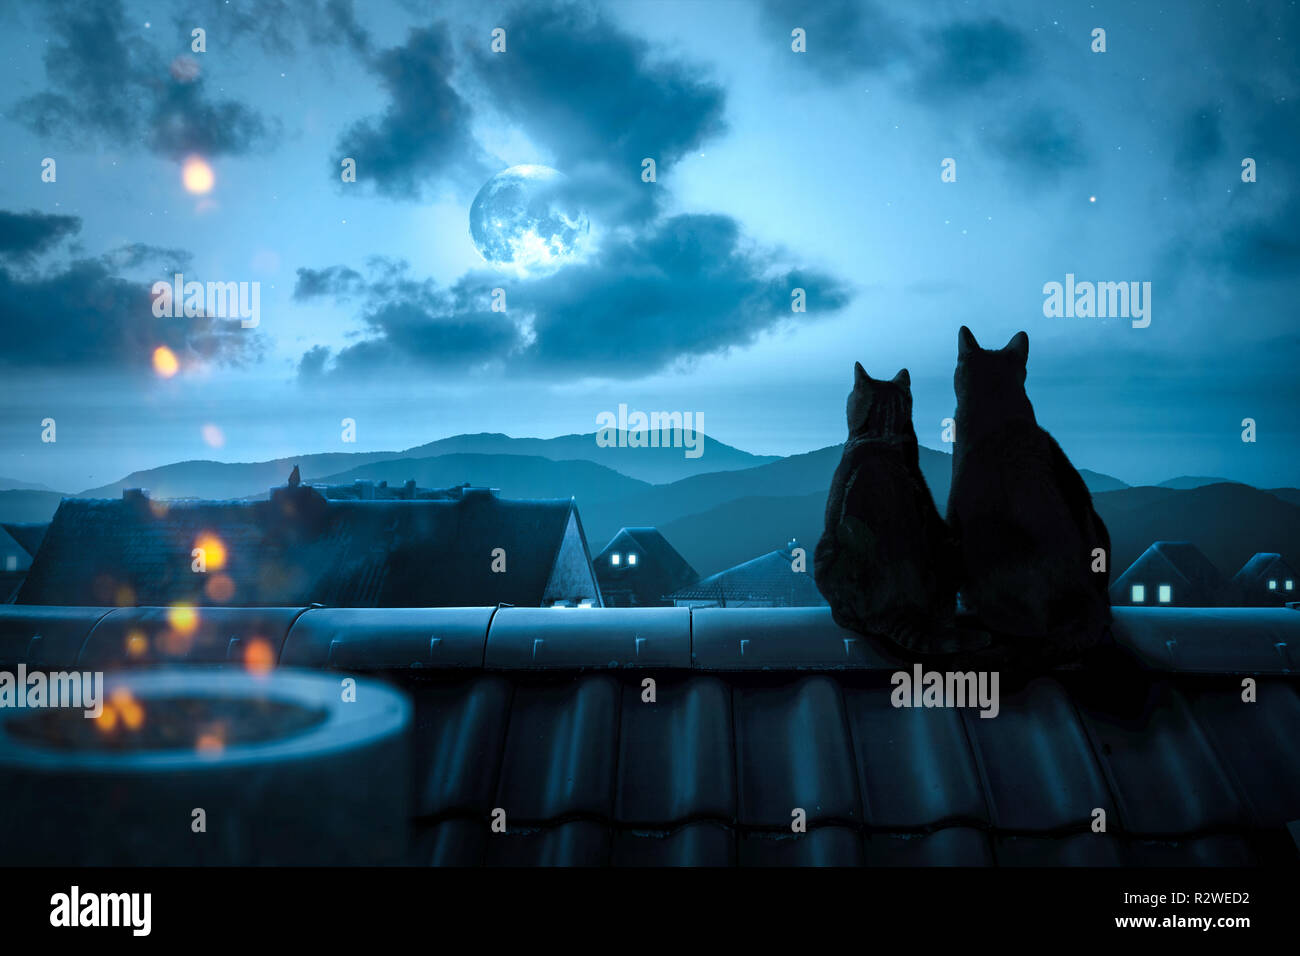 Cats watching the full moon on a rooftop - Stock Image